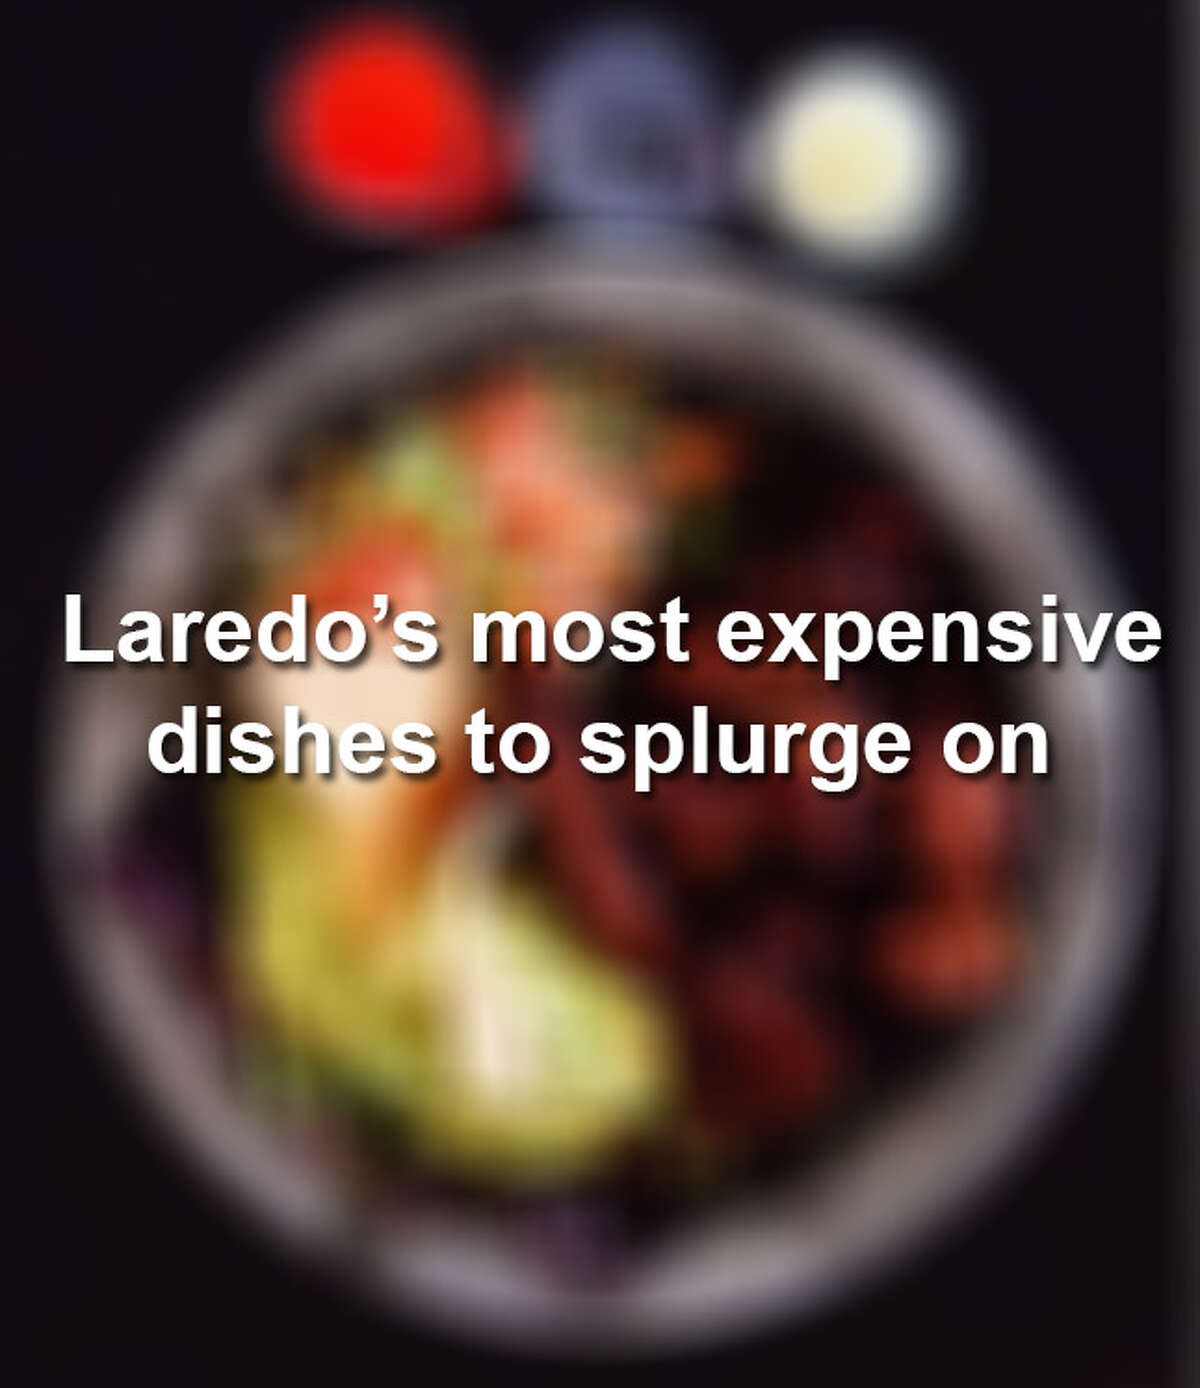 Feeling fancy? Keep scrolling to see some of Laredo's most expensive dishes to try at local eateries.